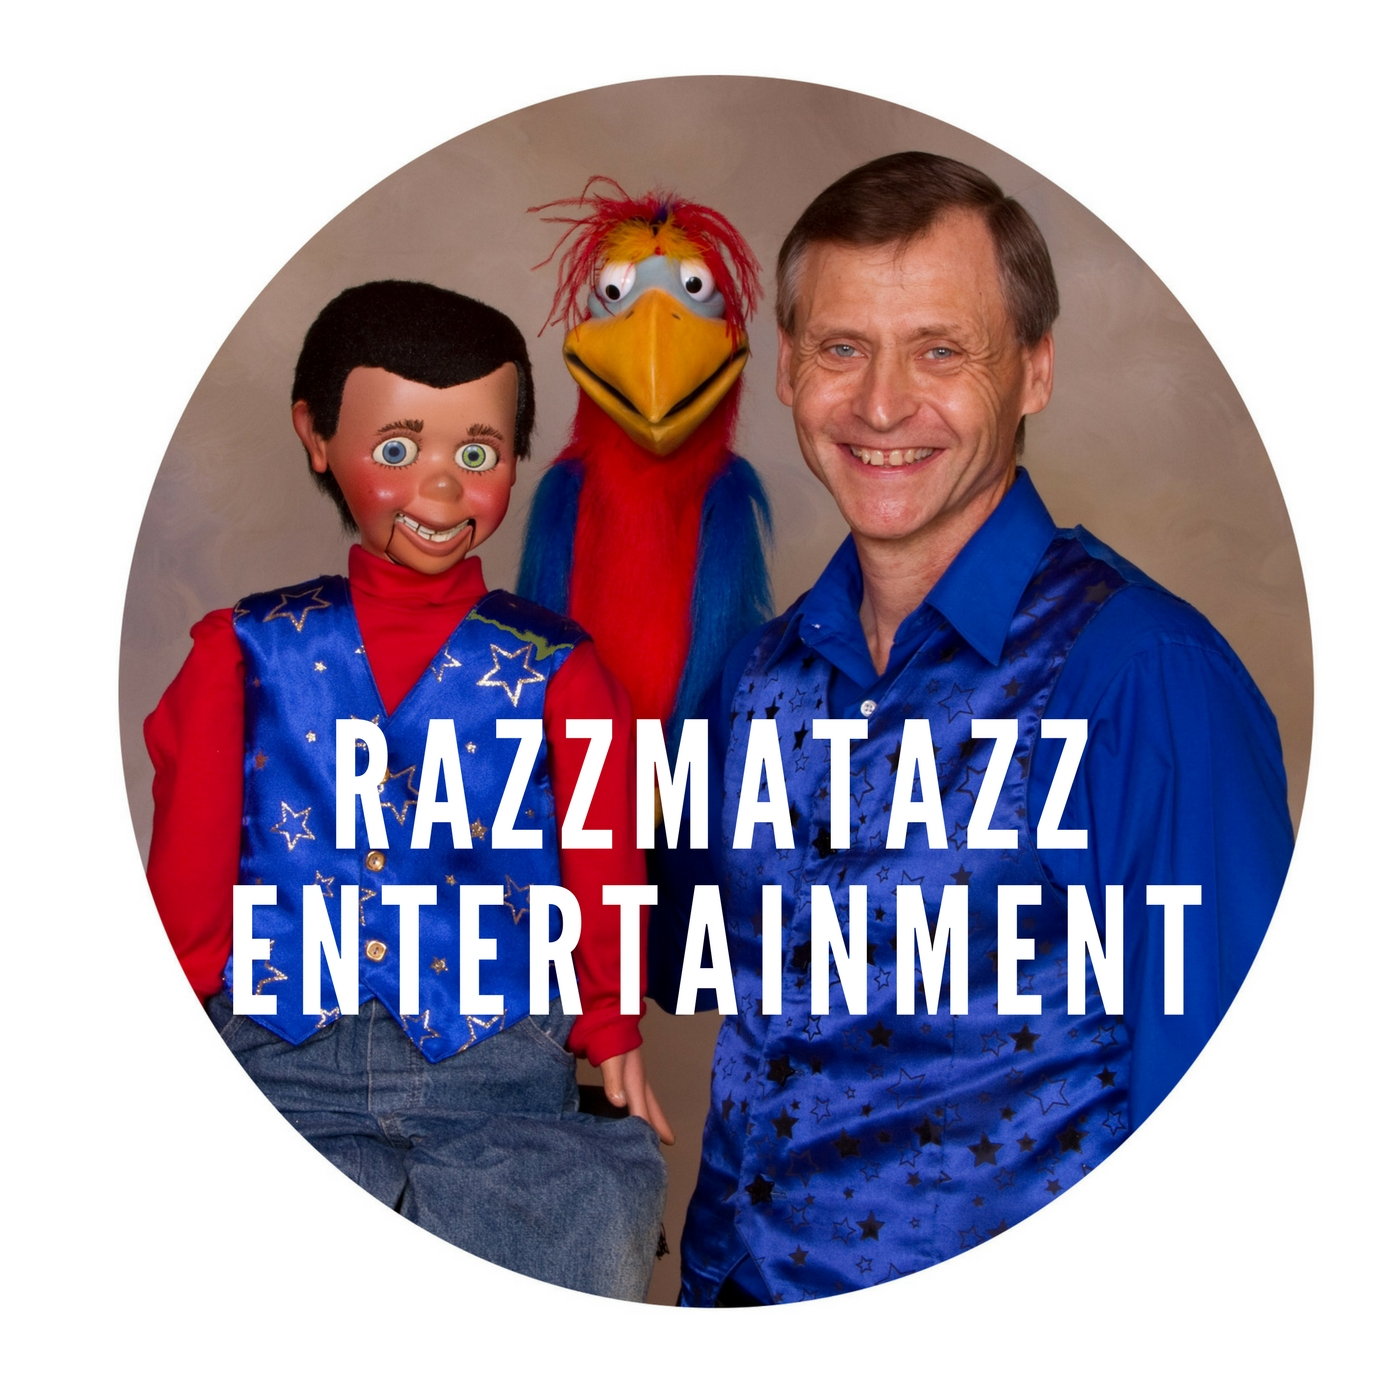 Razzmatazz Entertainment